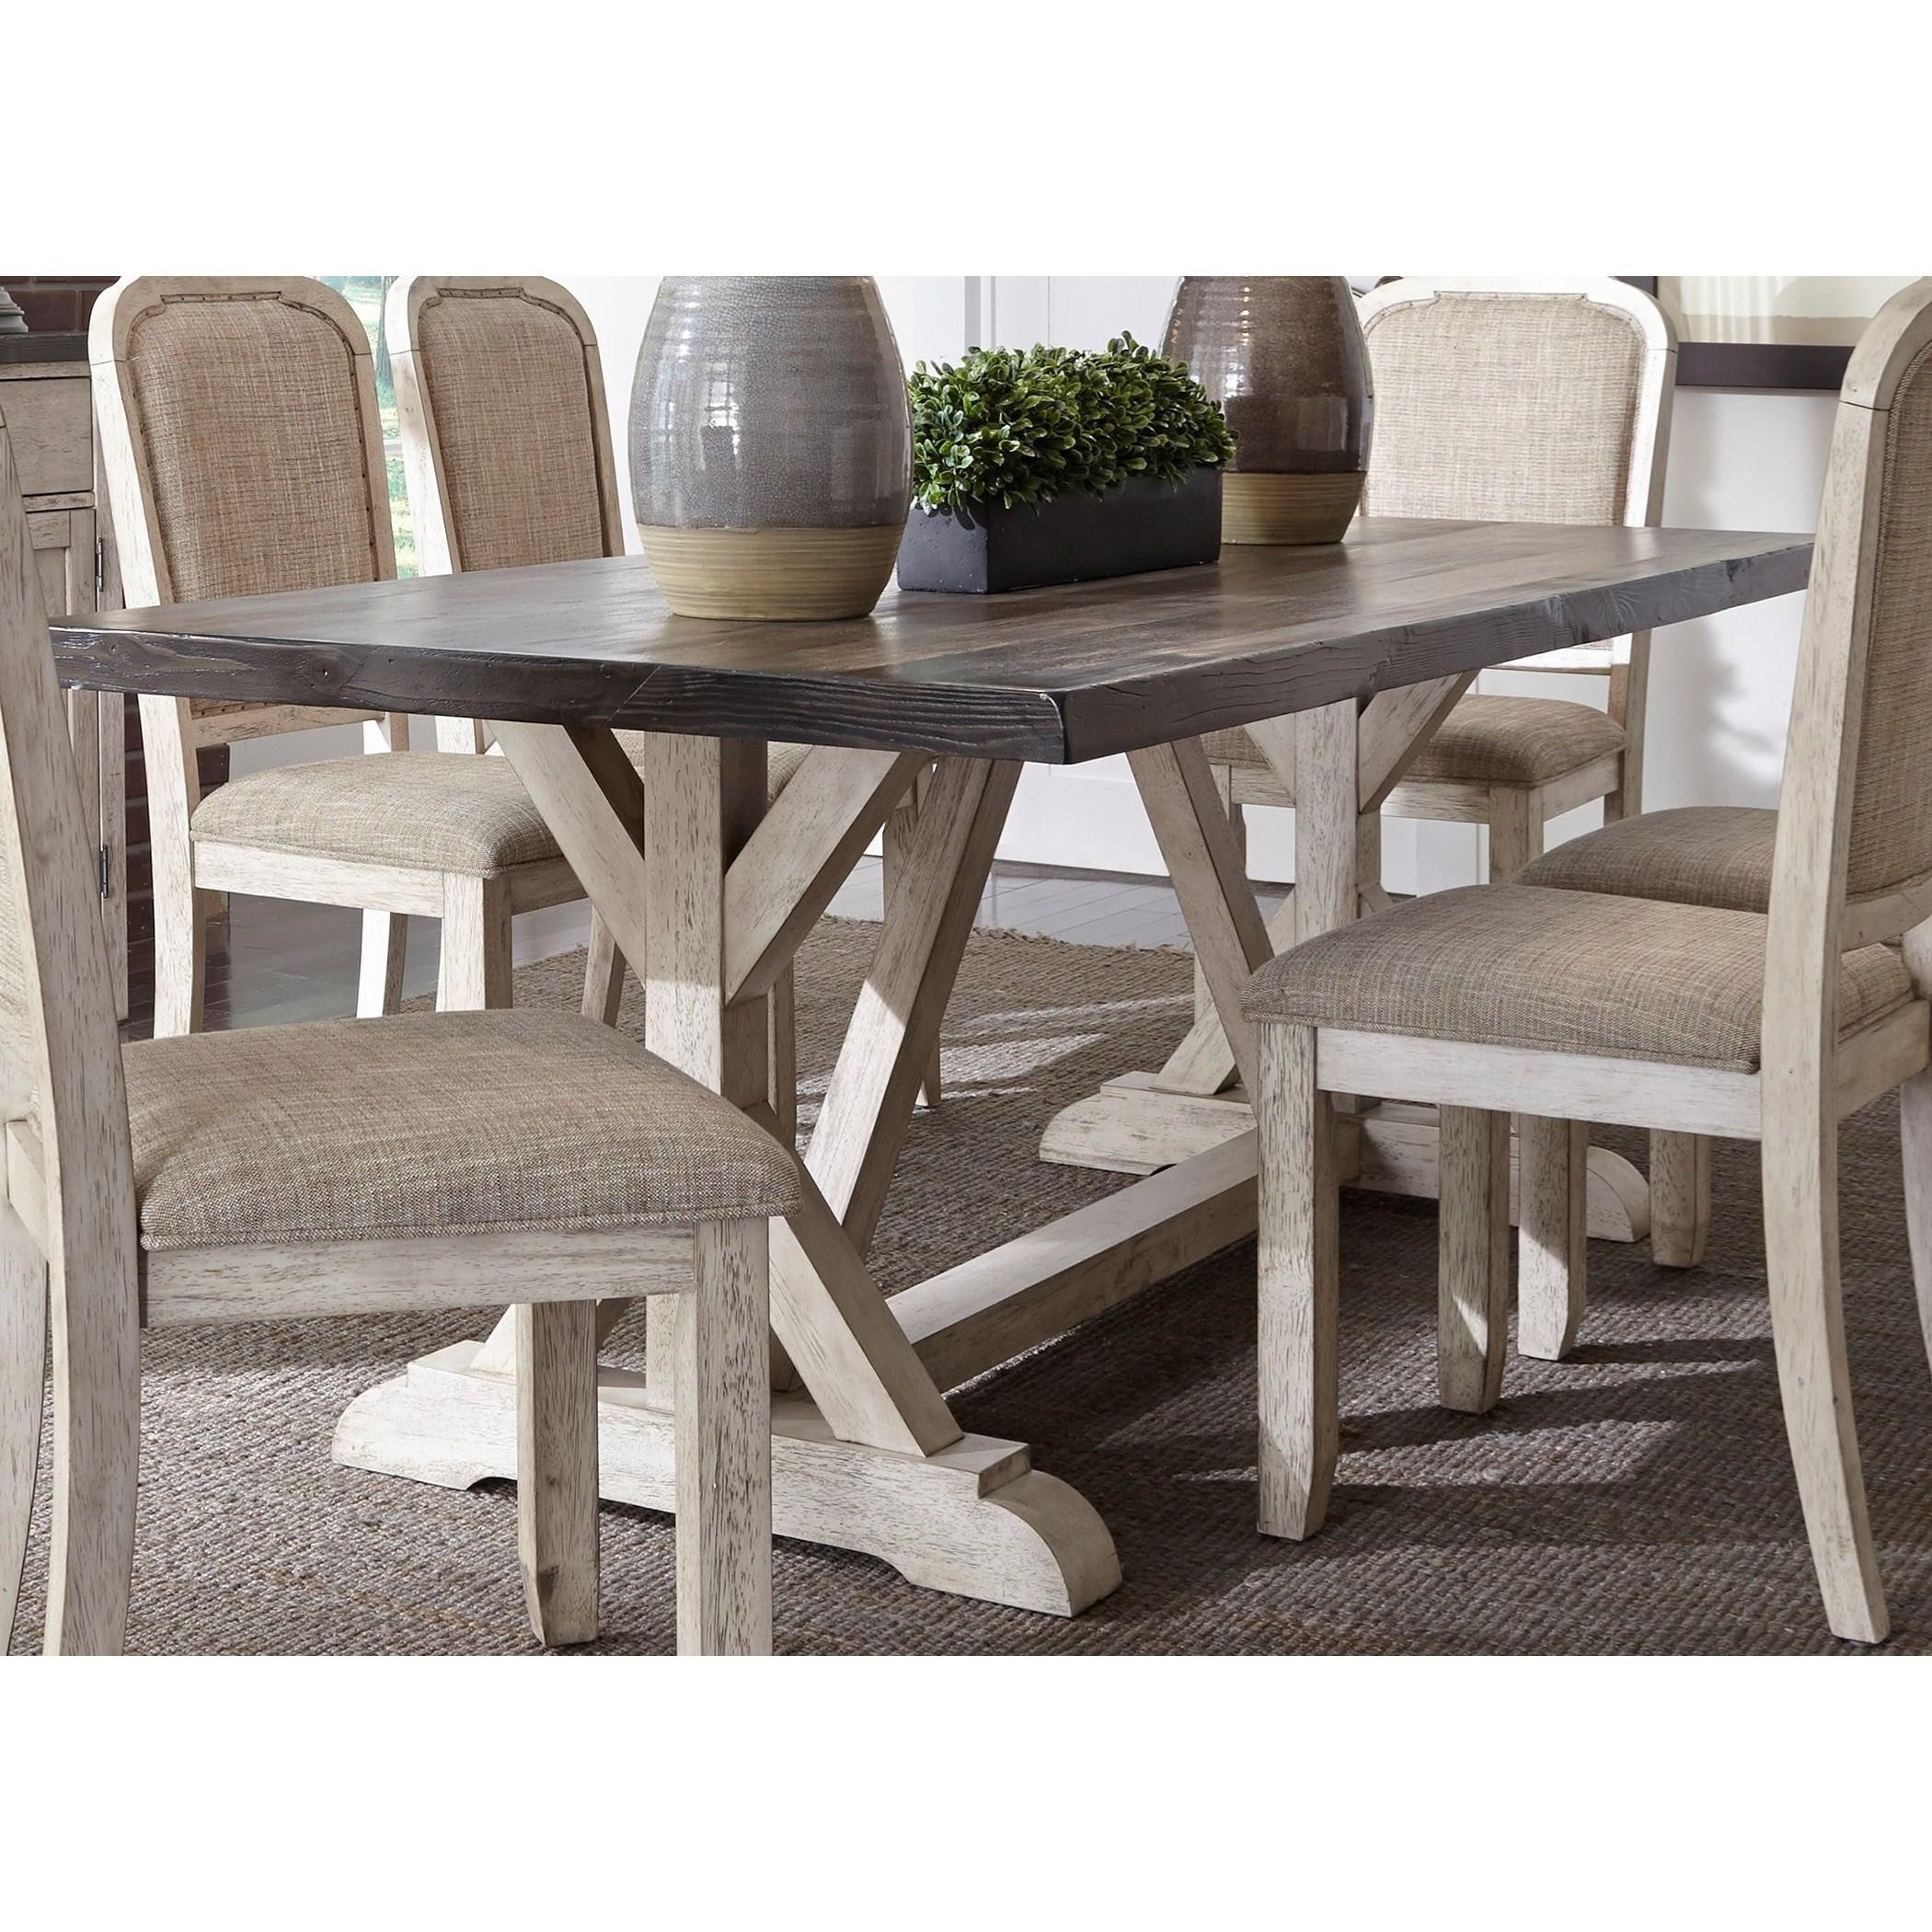 Liberty Furniture Willowrun Relaxed Vintage Trestle Table With X Base